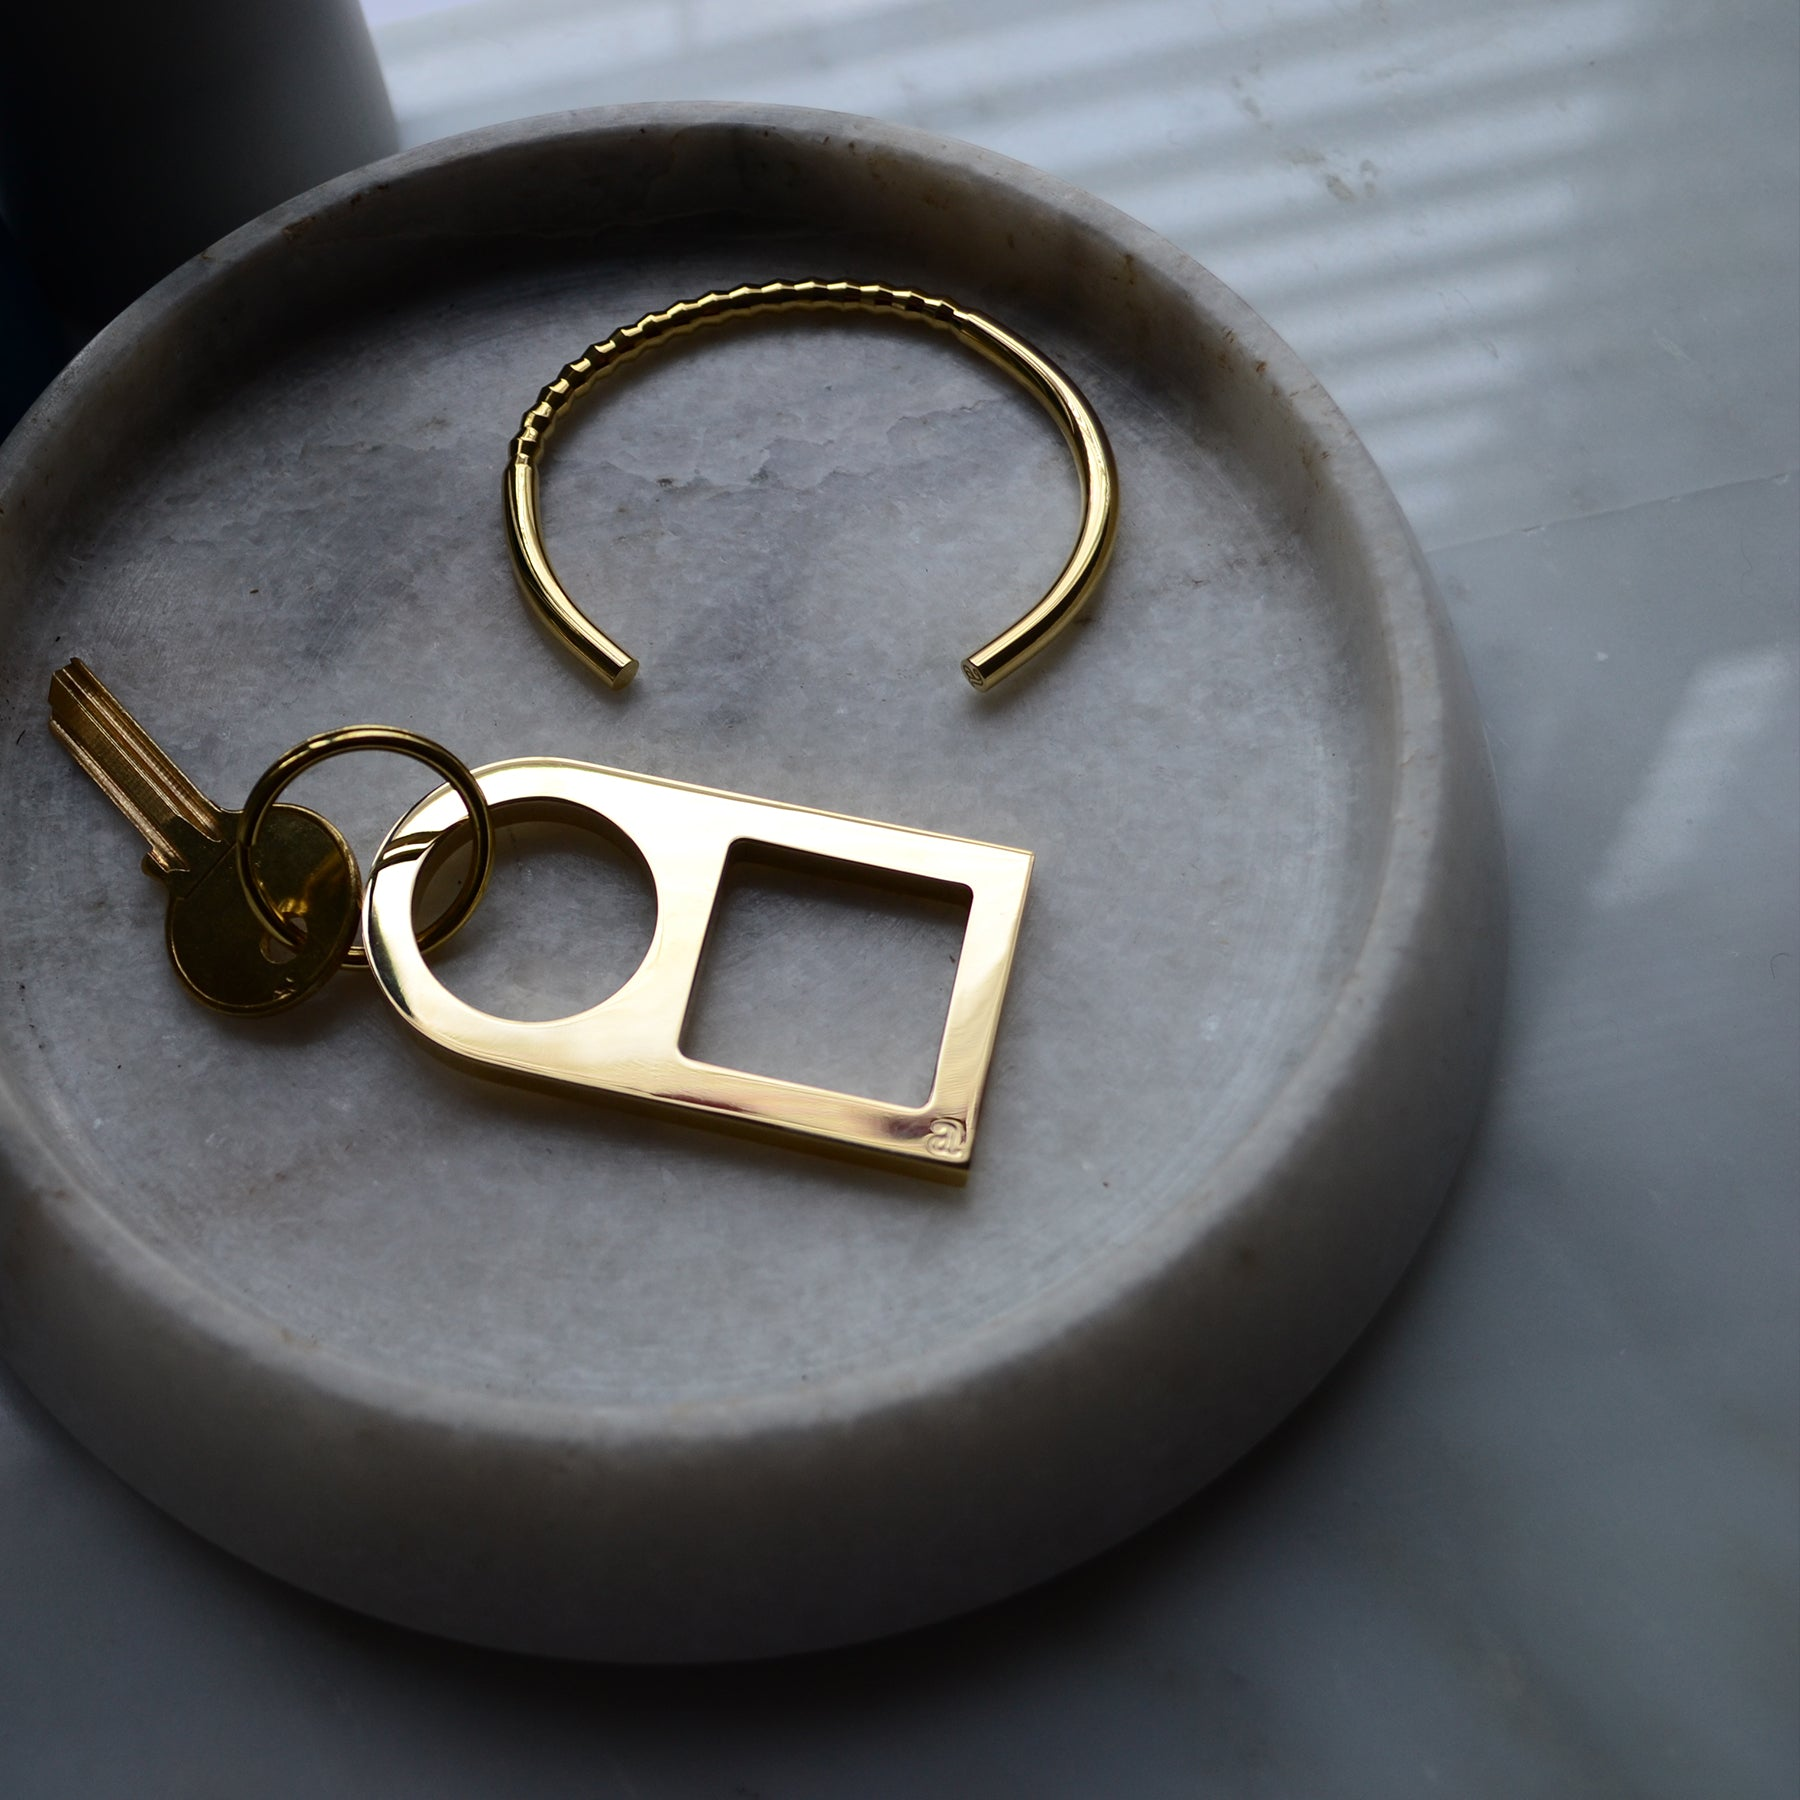 Brass key ring | Brass bracelet | Steel key ring | Alice Made This